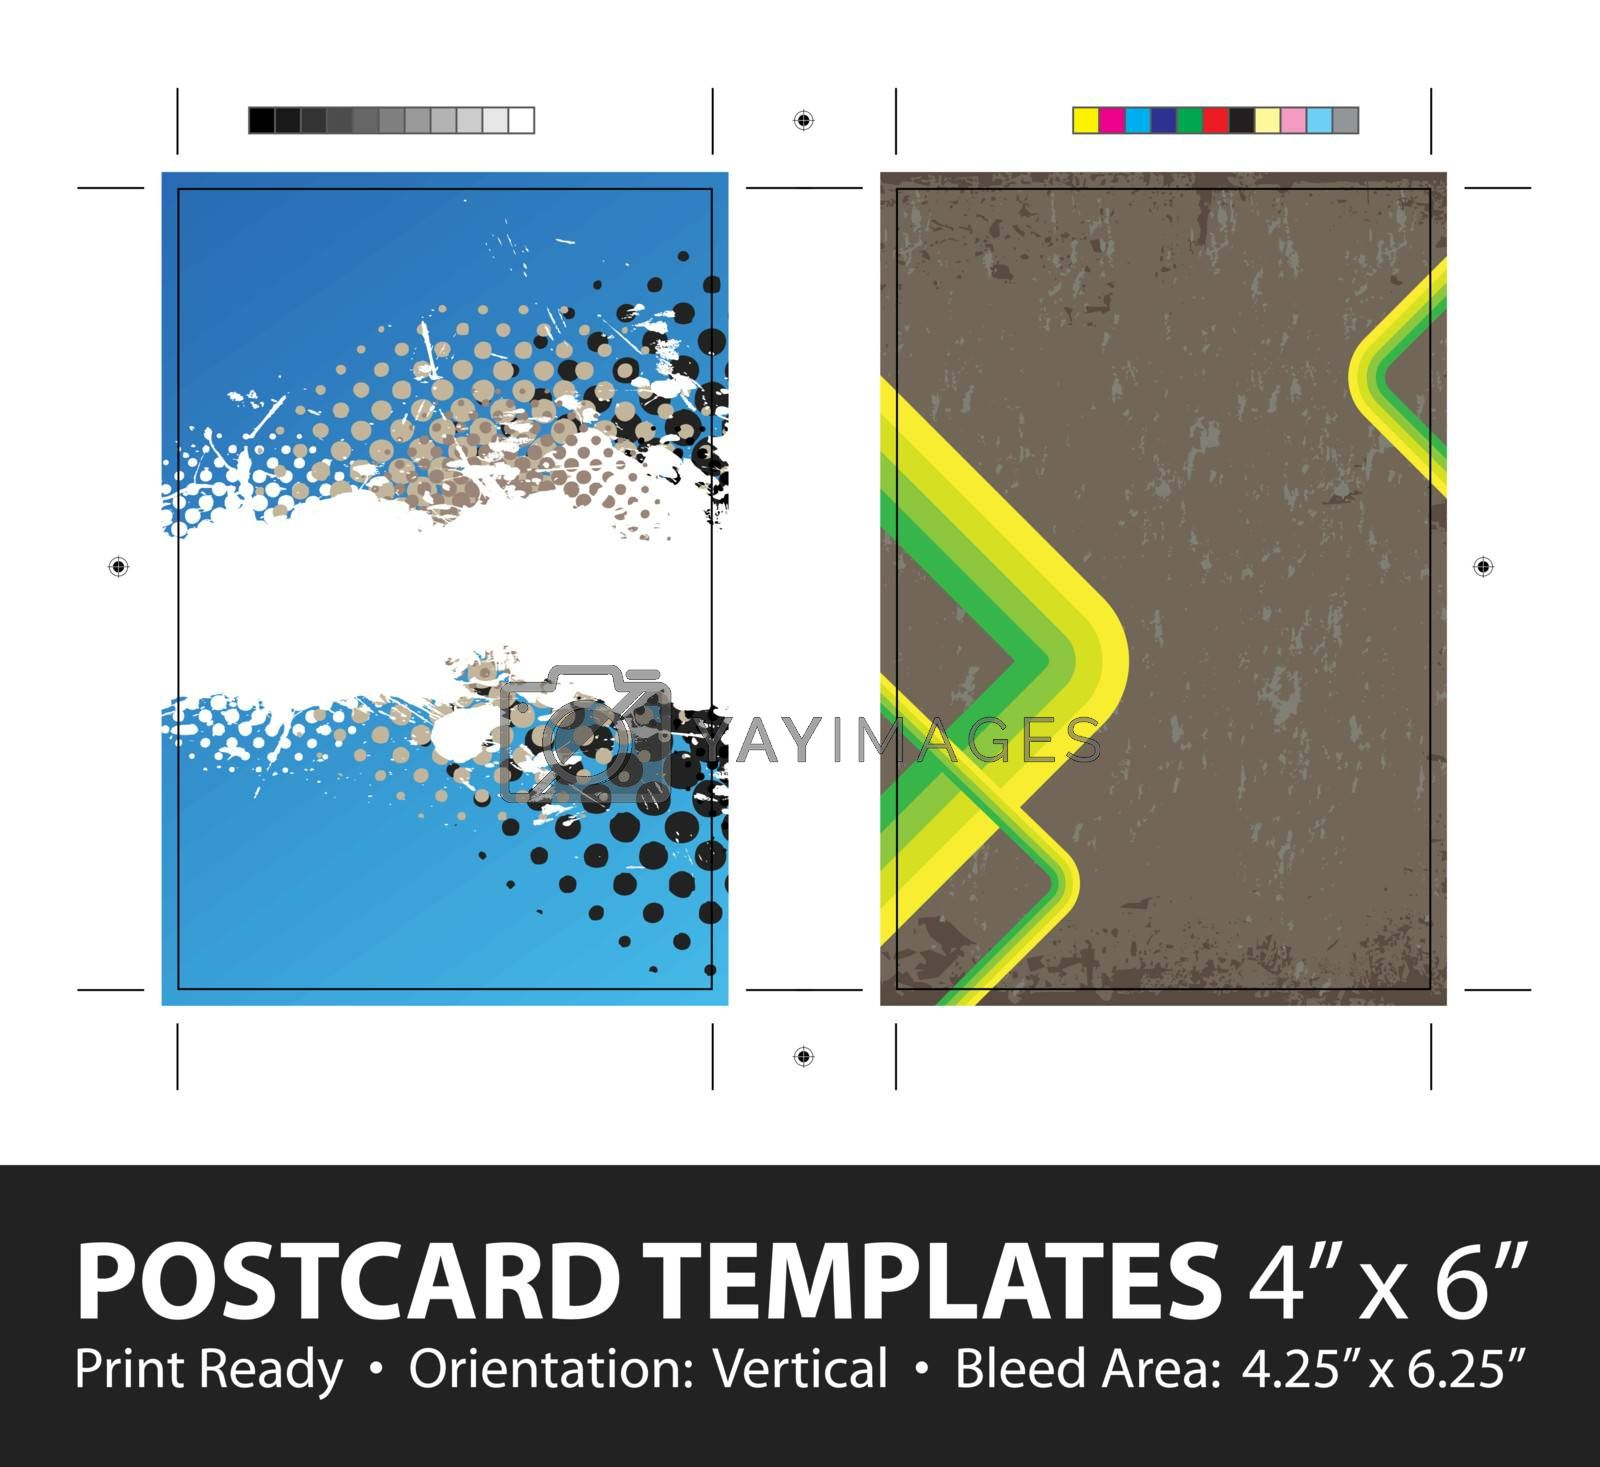 Grunge stripes postcard or direct mailer design template set with copy space. Customize this vector to suit the needs of your business. Print ready 4 x 6 with bleeds and crop marks.